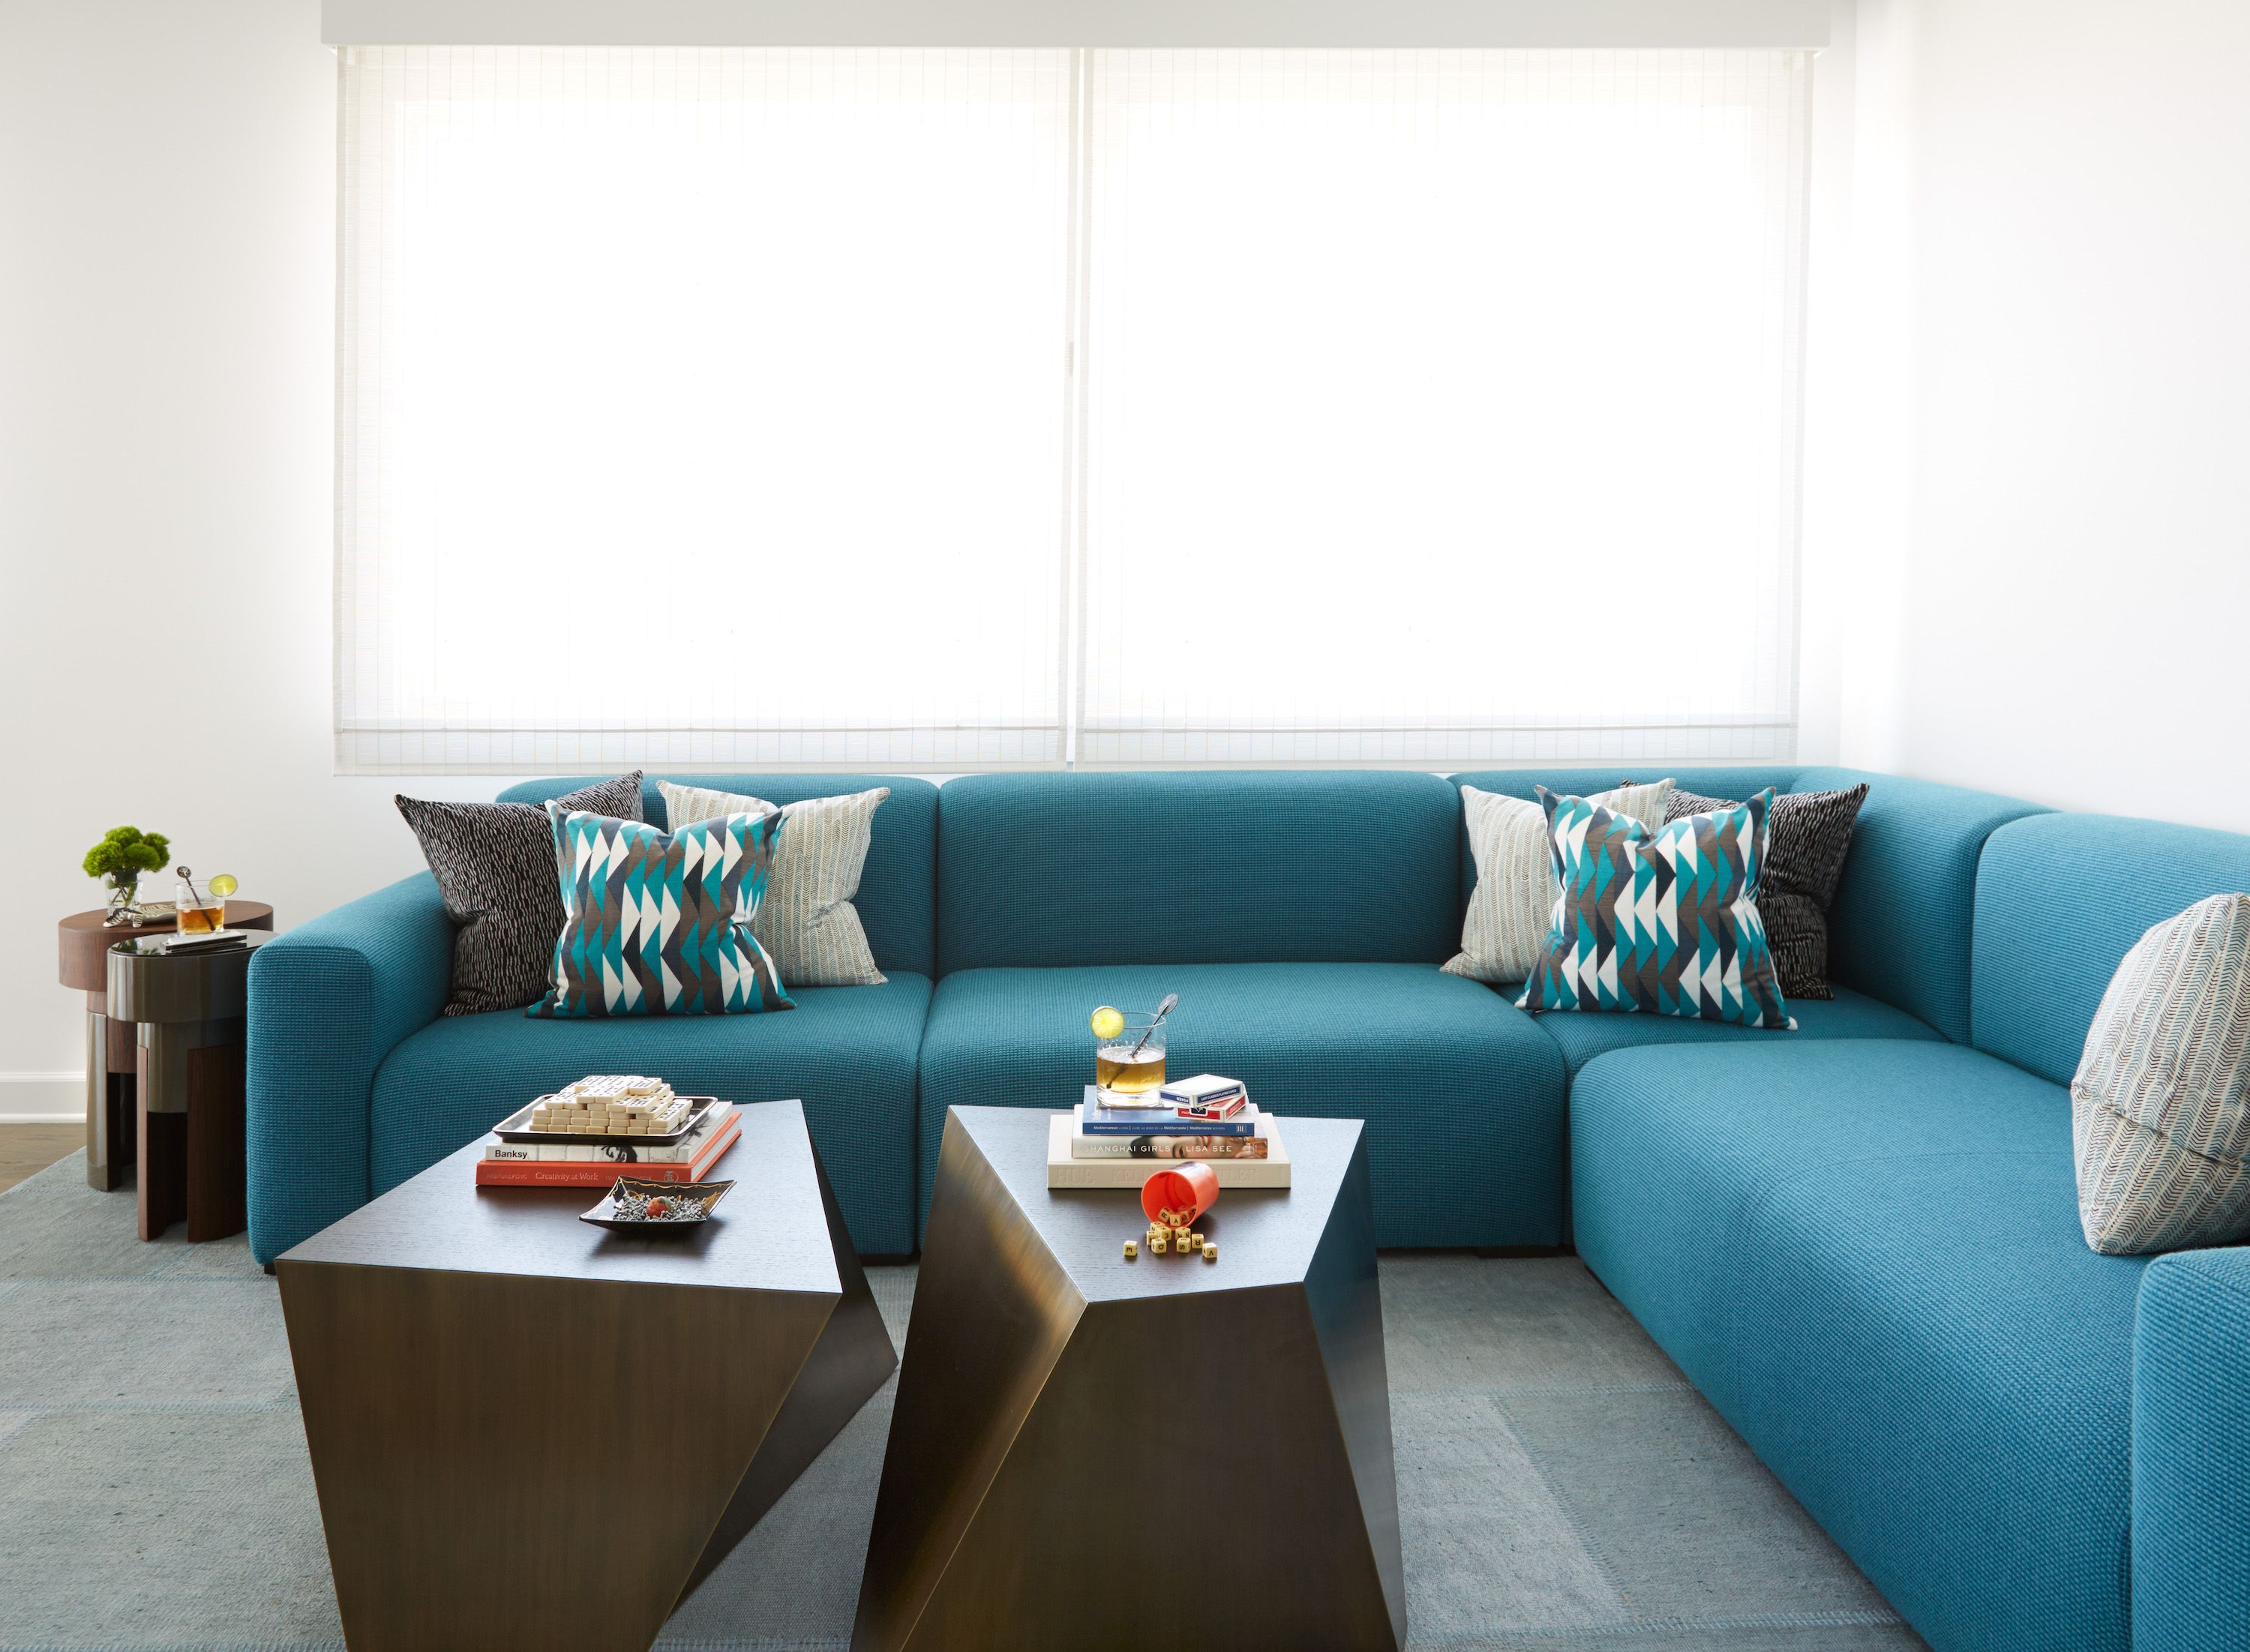 Design Couch 40 Sectional Sofas For Every Style Of Living Room Decor Living